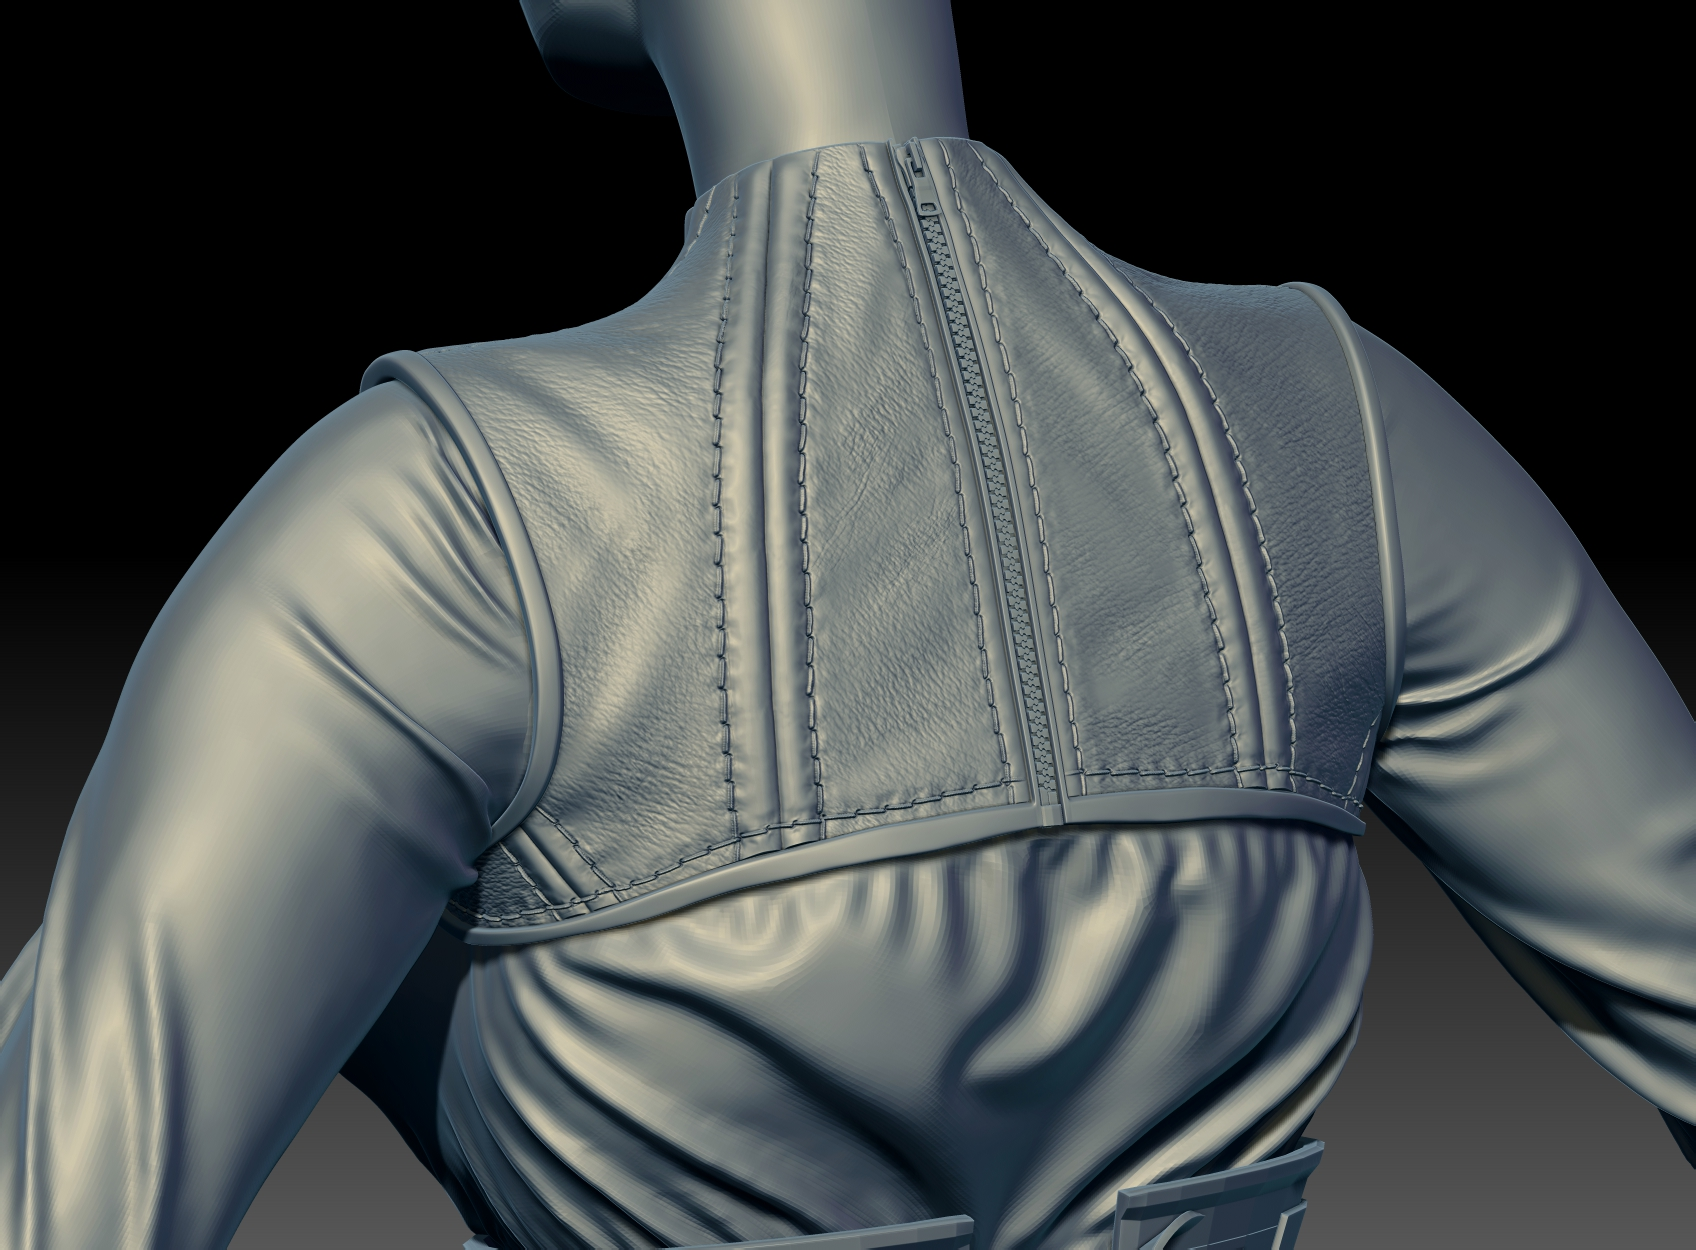 CGMEETUP - Stich leather for Zbrush in GUMROAD by Sebastien Levieux